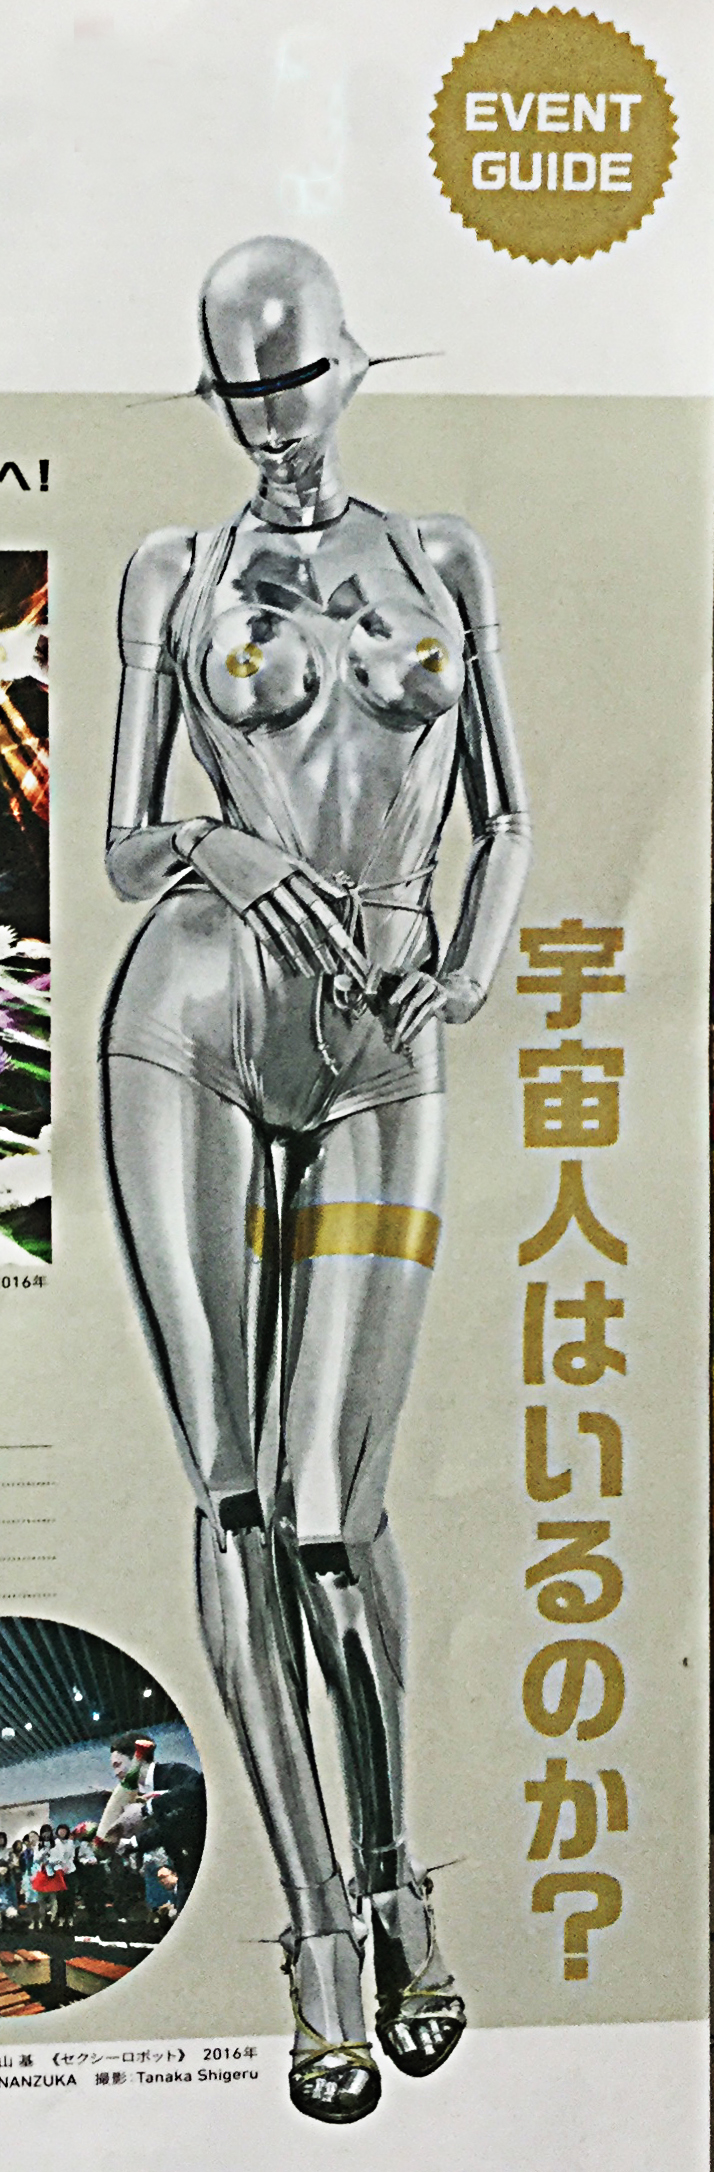 Image of the shiny silver female robot with the text from the vent guide as background. the feamale has gold nipples and is wearing strappy heeled shoes, big pants and a helmet.